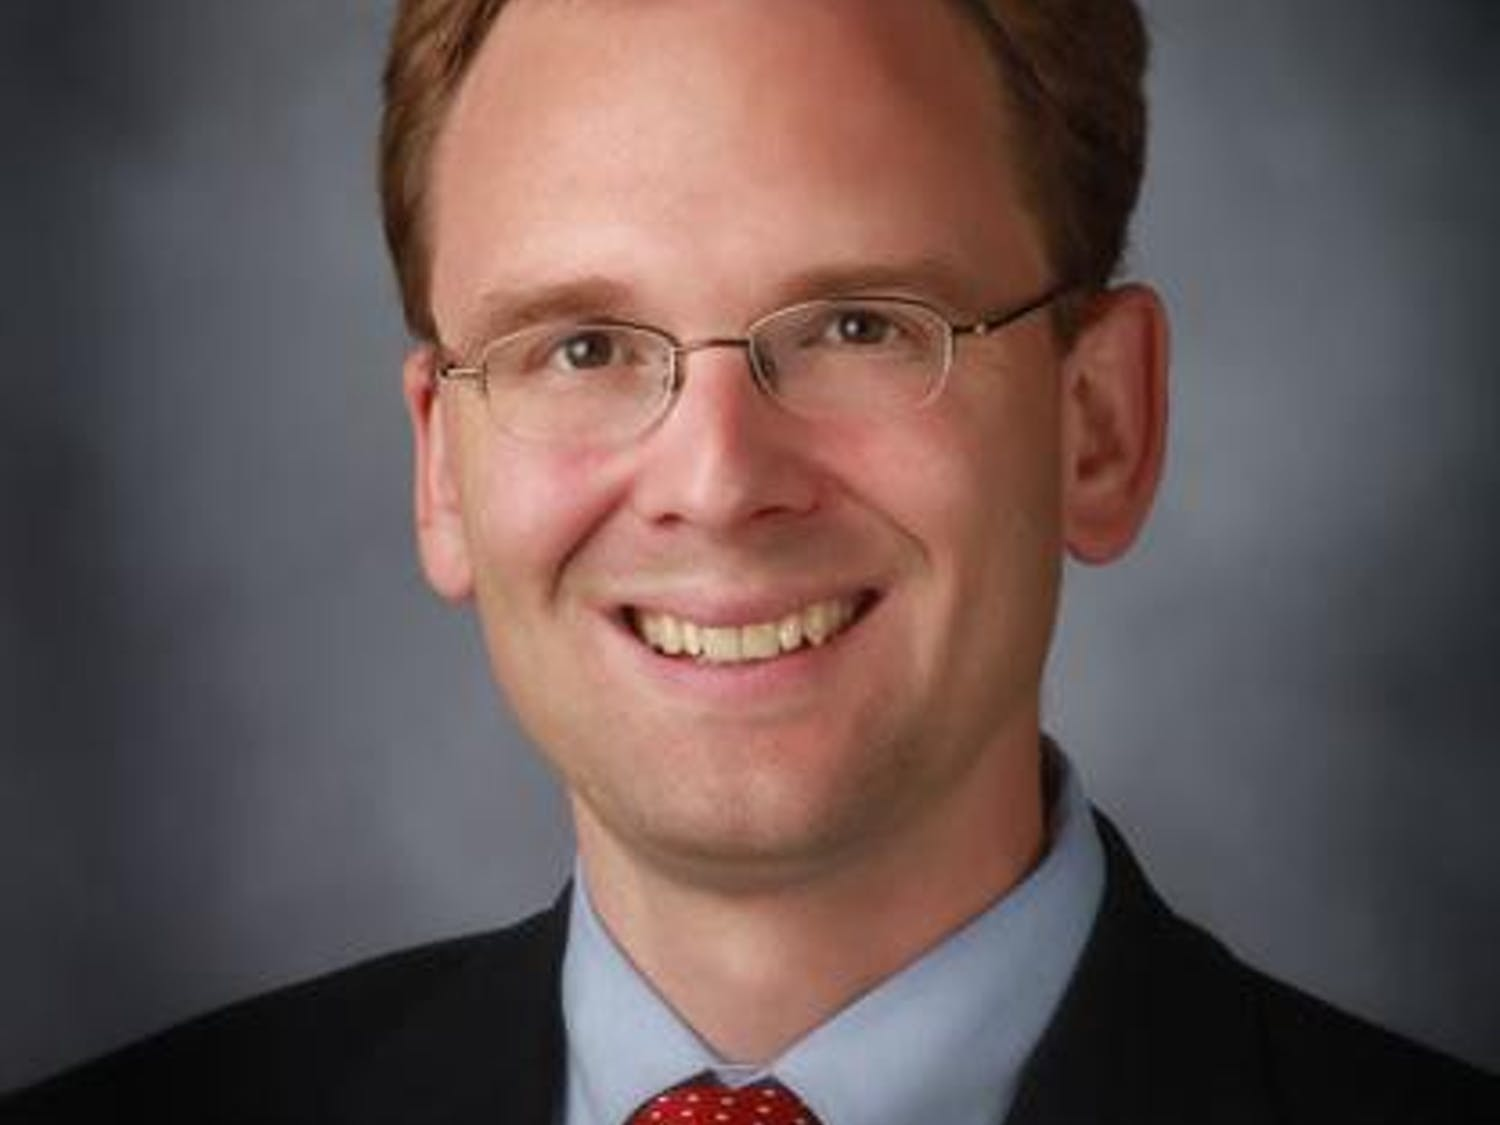 Outagamie County Executive Tom Nelson announced Thursday he will seek the House of Representatives seat being vacated by U.S. Rep. Reid Ribble, R-Wis.